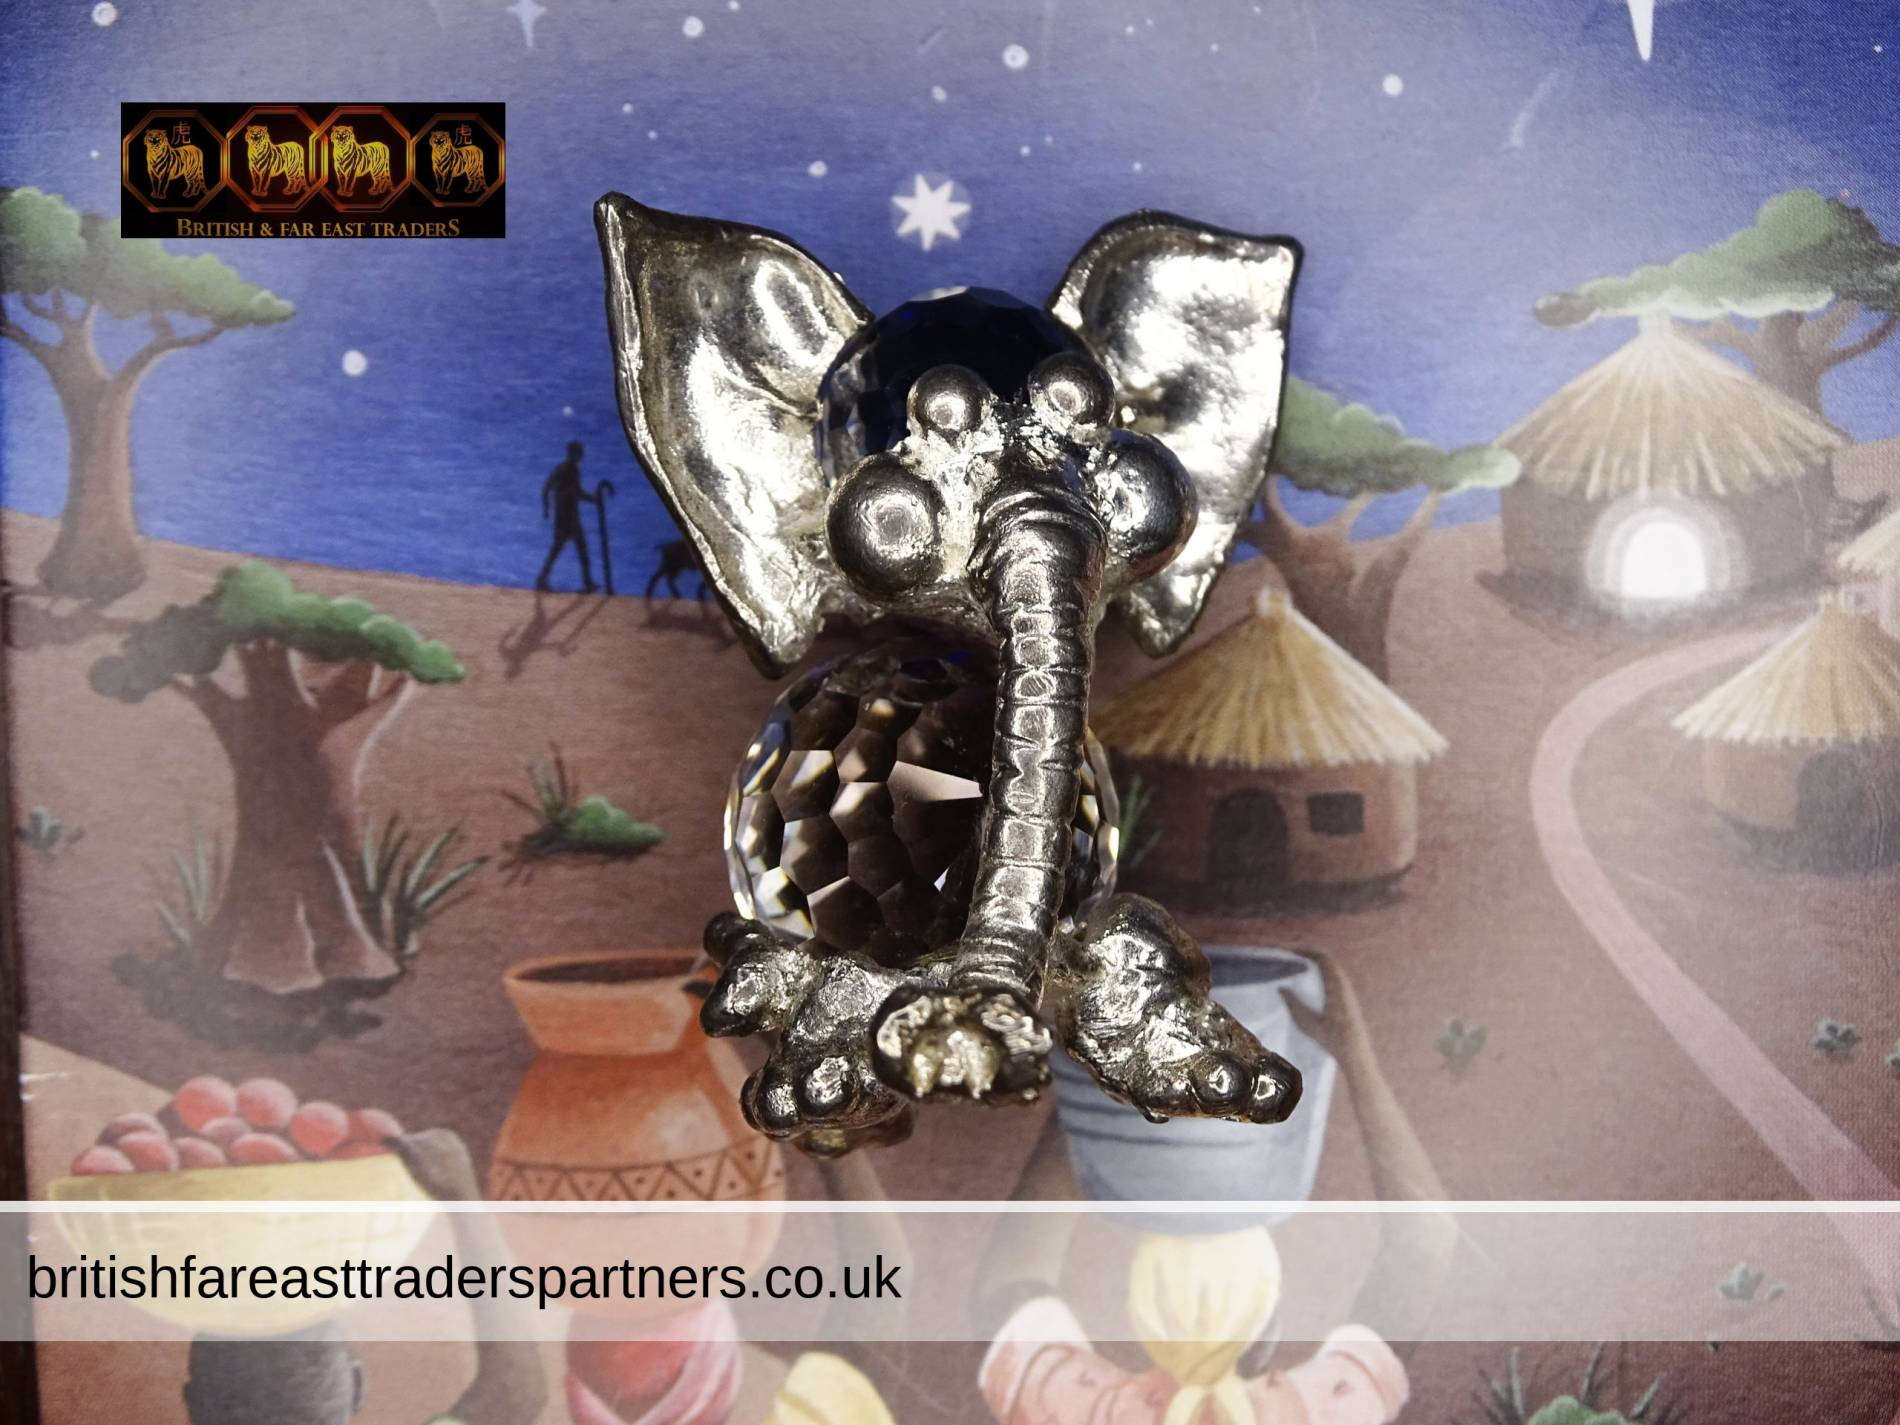 VINTAGE FIREBALL Crystal Jelly Belly Elephant Silver Tone Pewter Ornament / PAPERWEIGHT VGC